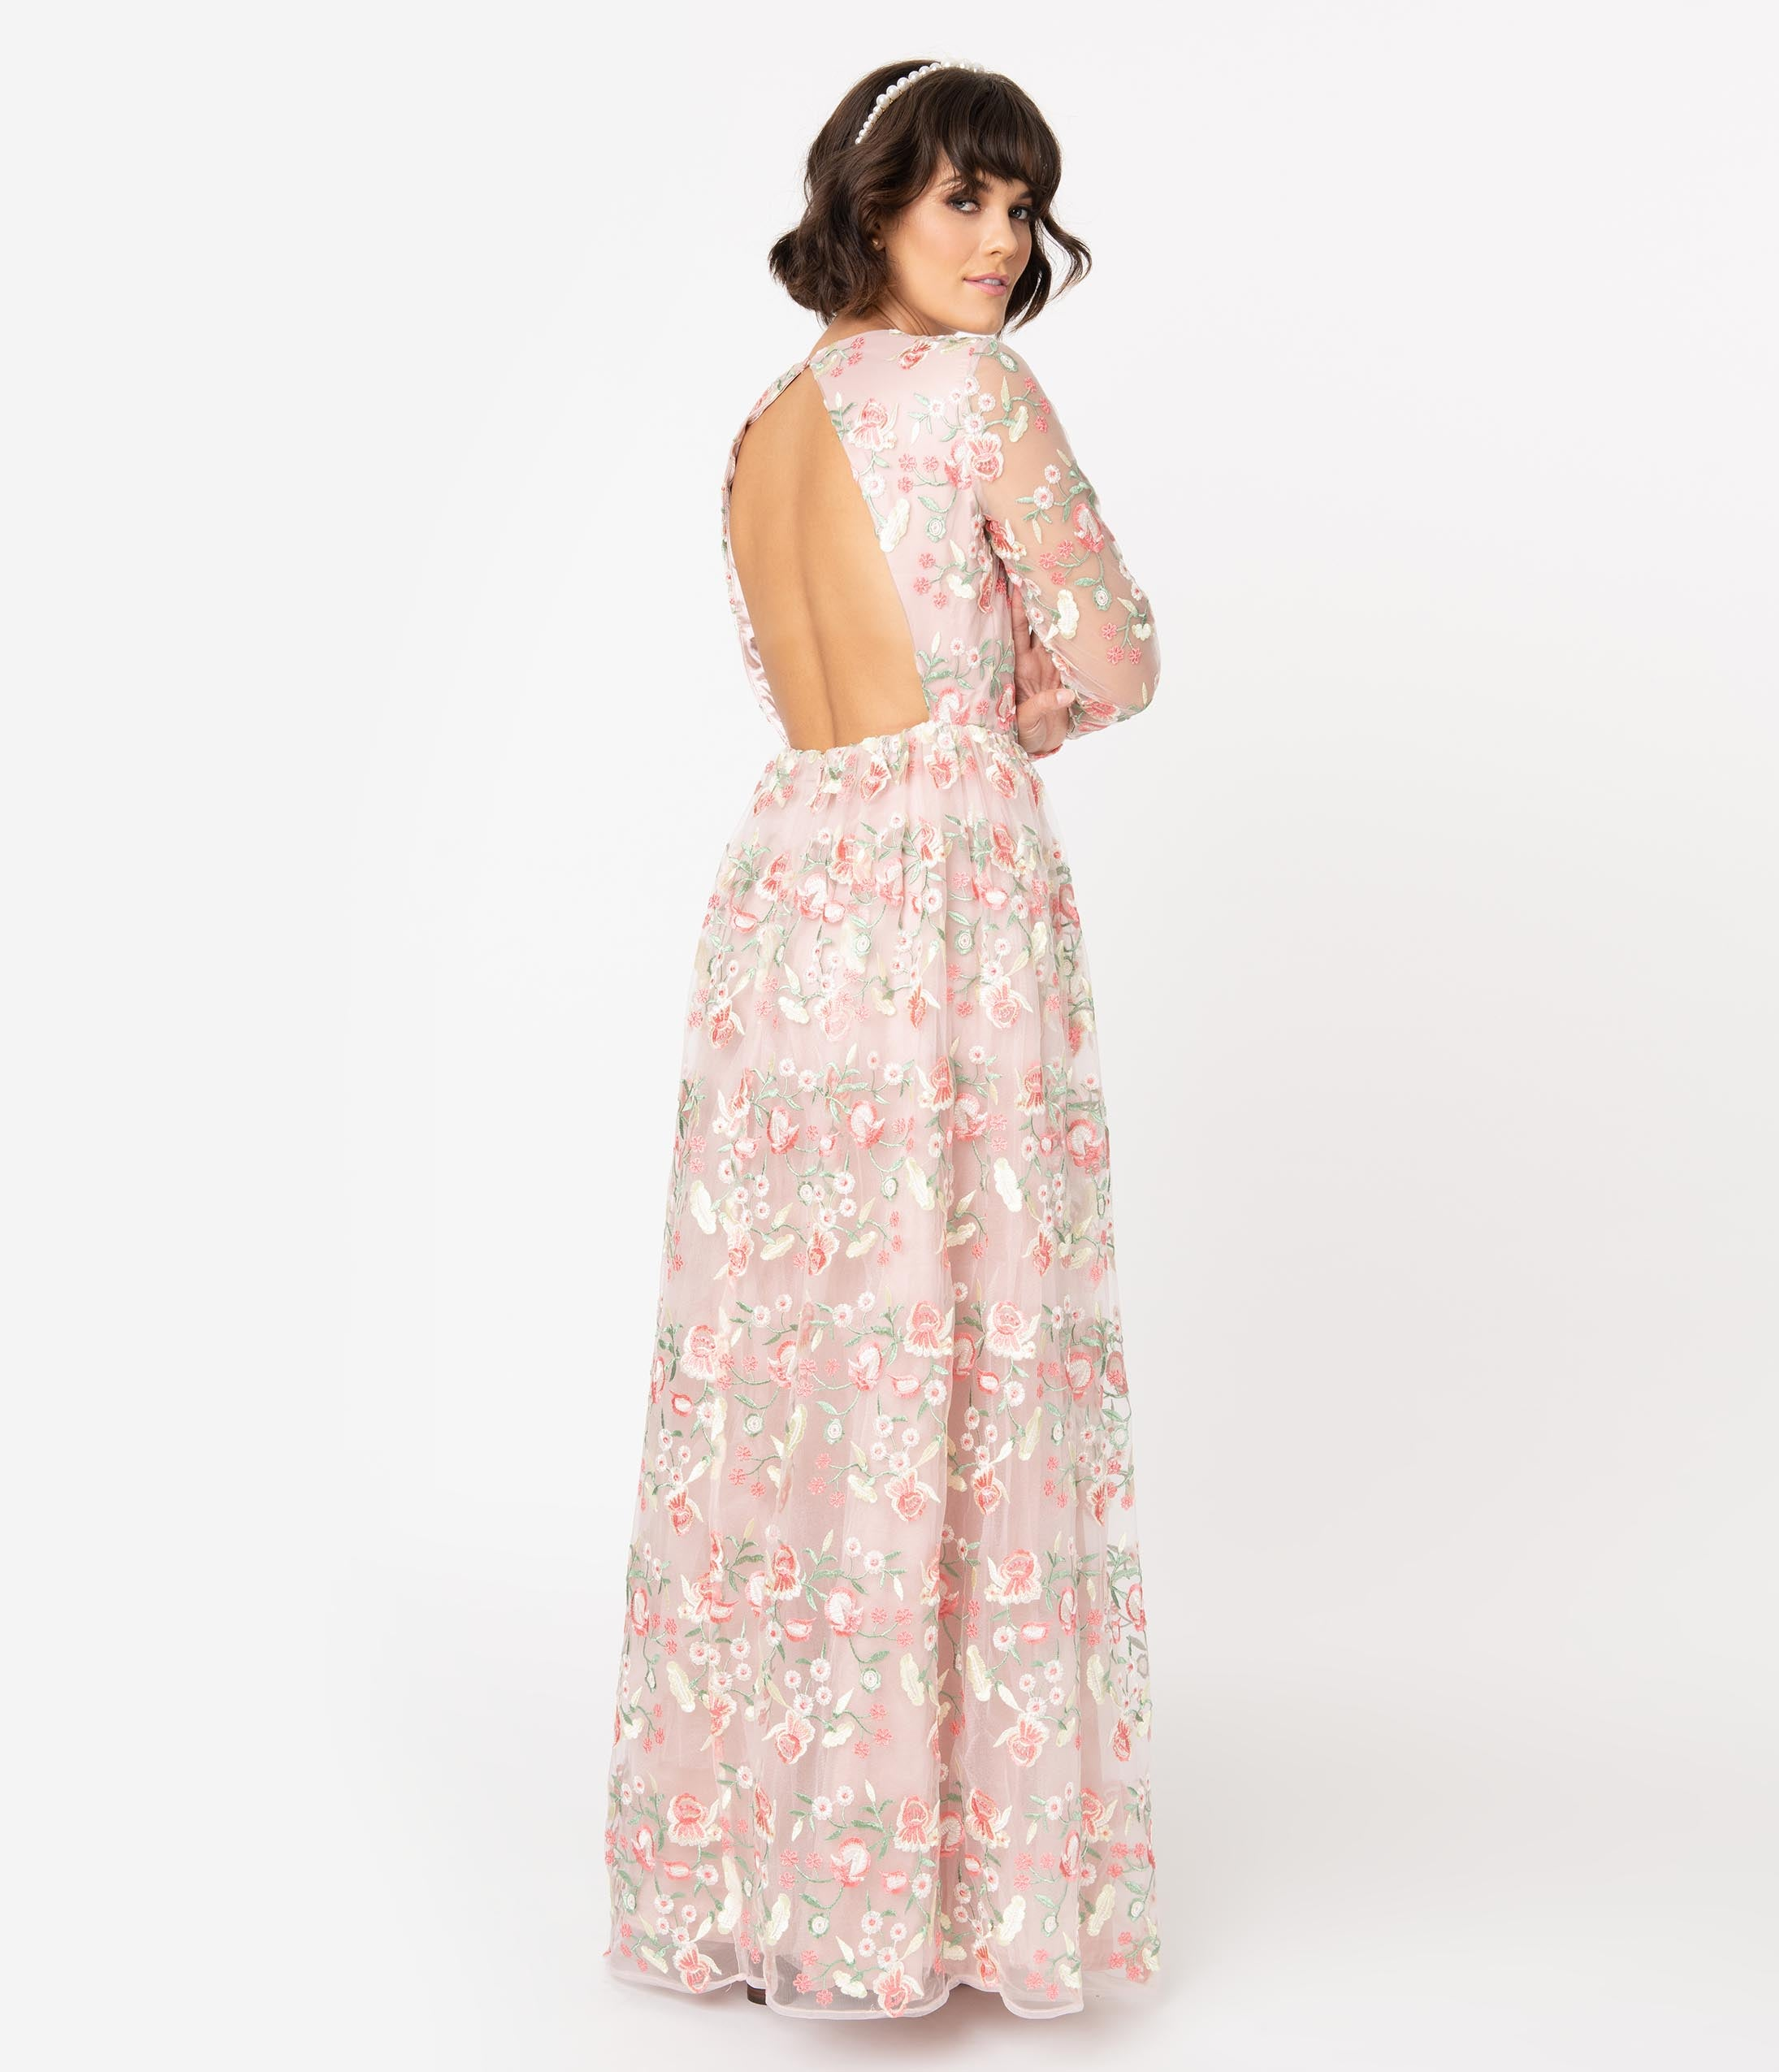 1960s Cocktail, Party, Prom, Evening Dresses Chi Chi London Blush Pink Embroidered Floral Cina Maxi Dress $118.00 AT vintagedancer.com